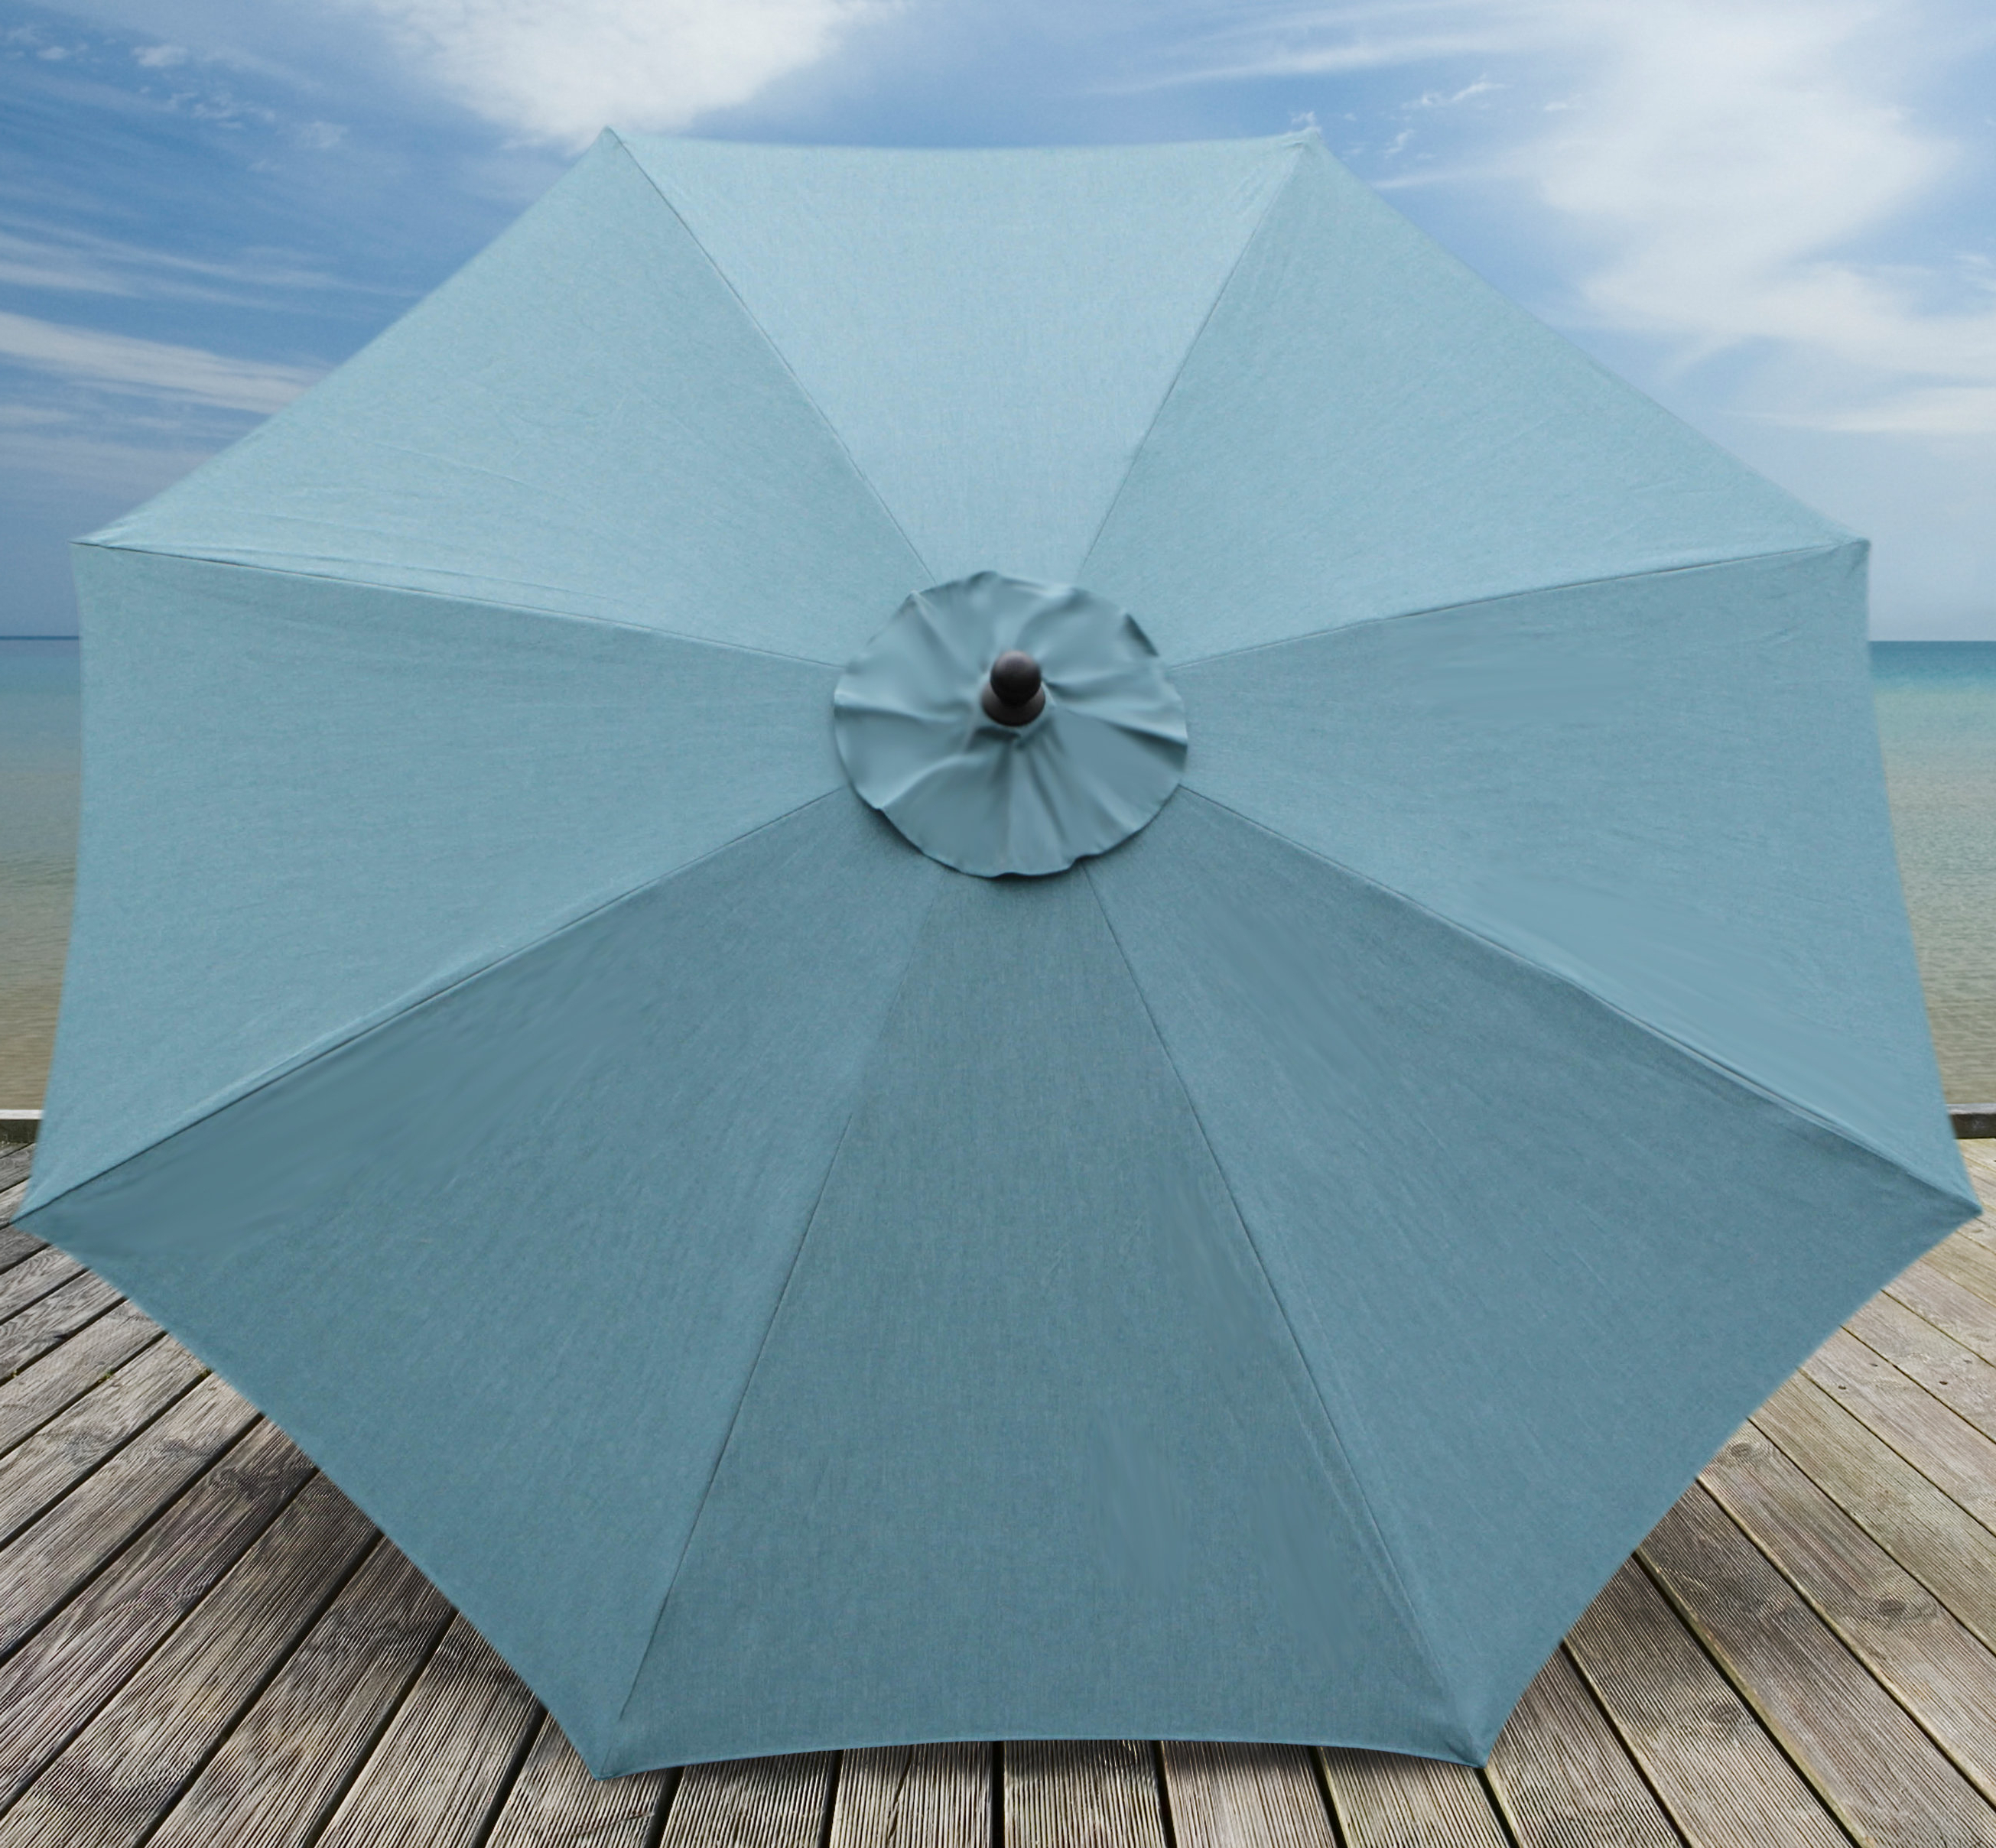 Mucci Madilyn Market Sunbrella Umbrellas Regarding Preferred Beachcrest Home Mucci Madilyn 10' Market Sunbrella Umbrella (View 11 of 20)